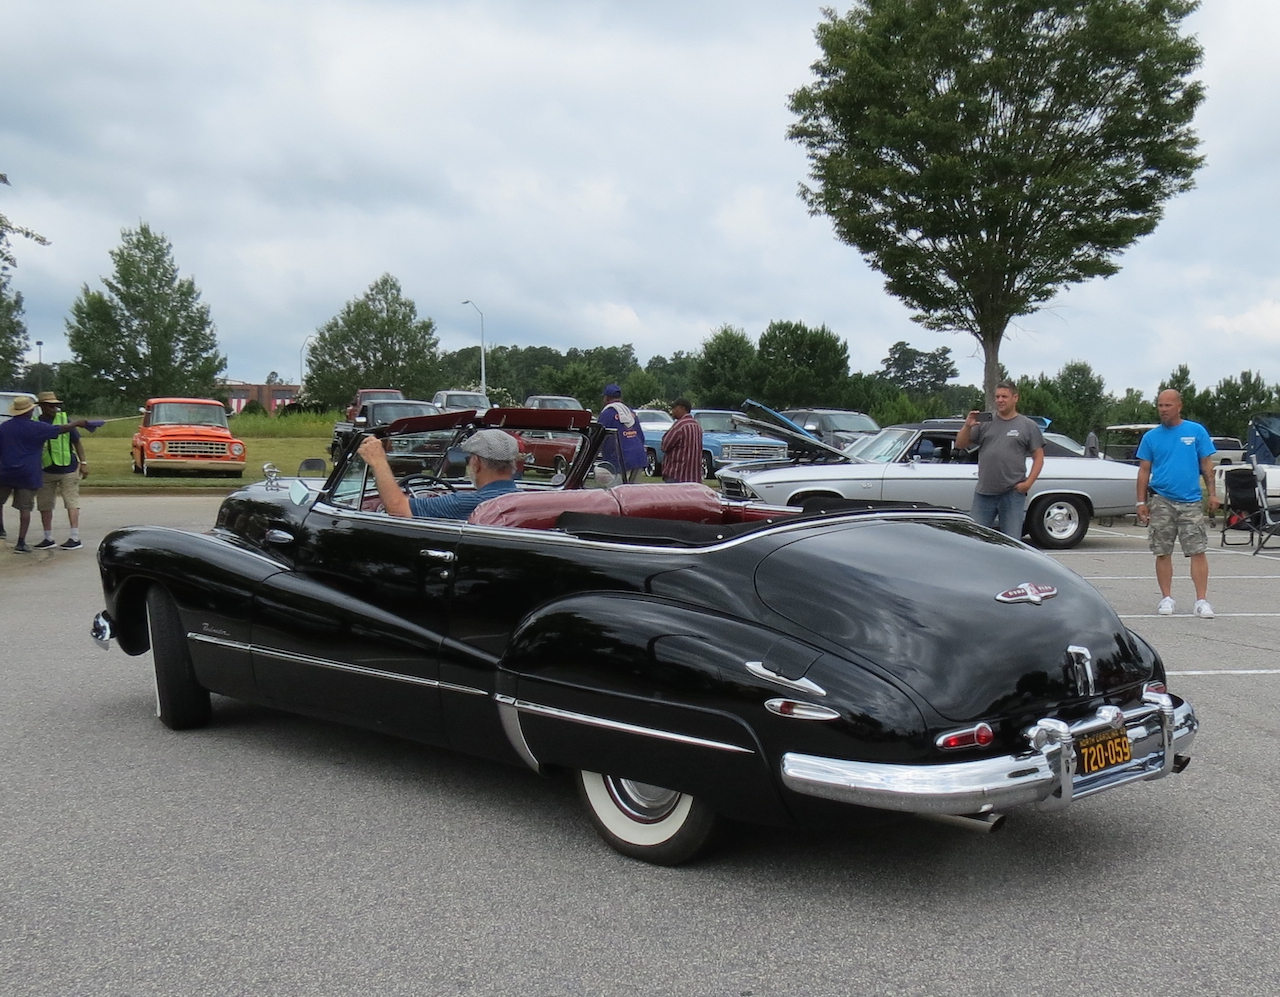 1948 Buick Roadmaster Convertible Capital City Cruisers